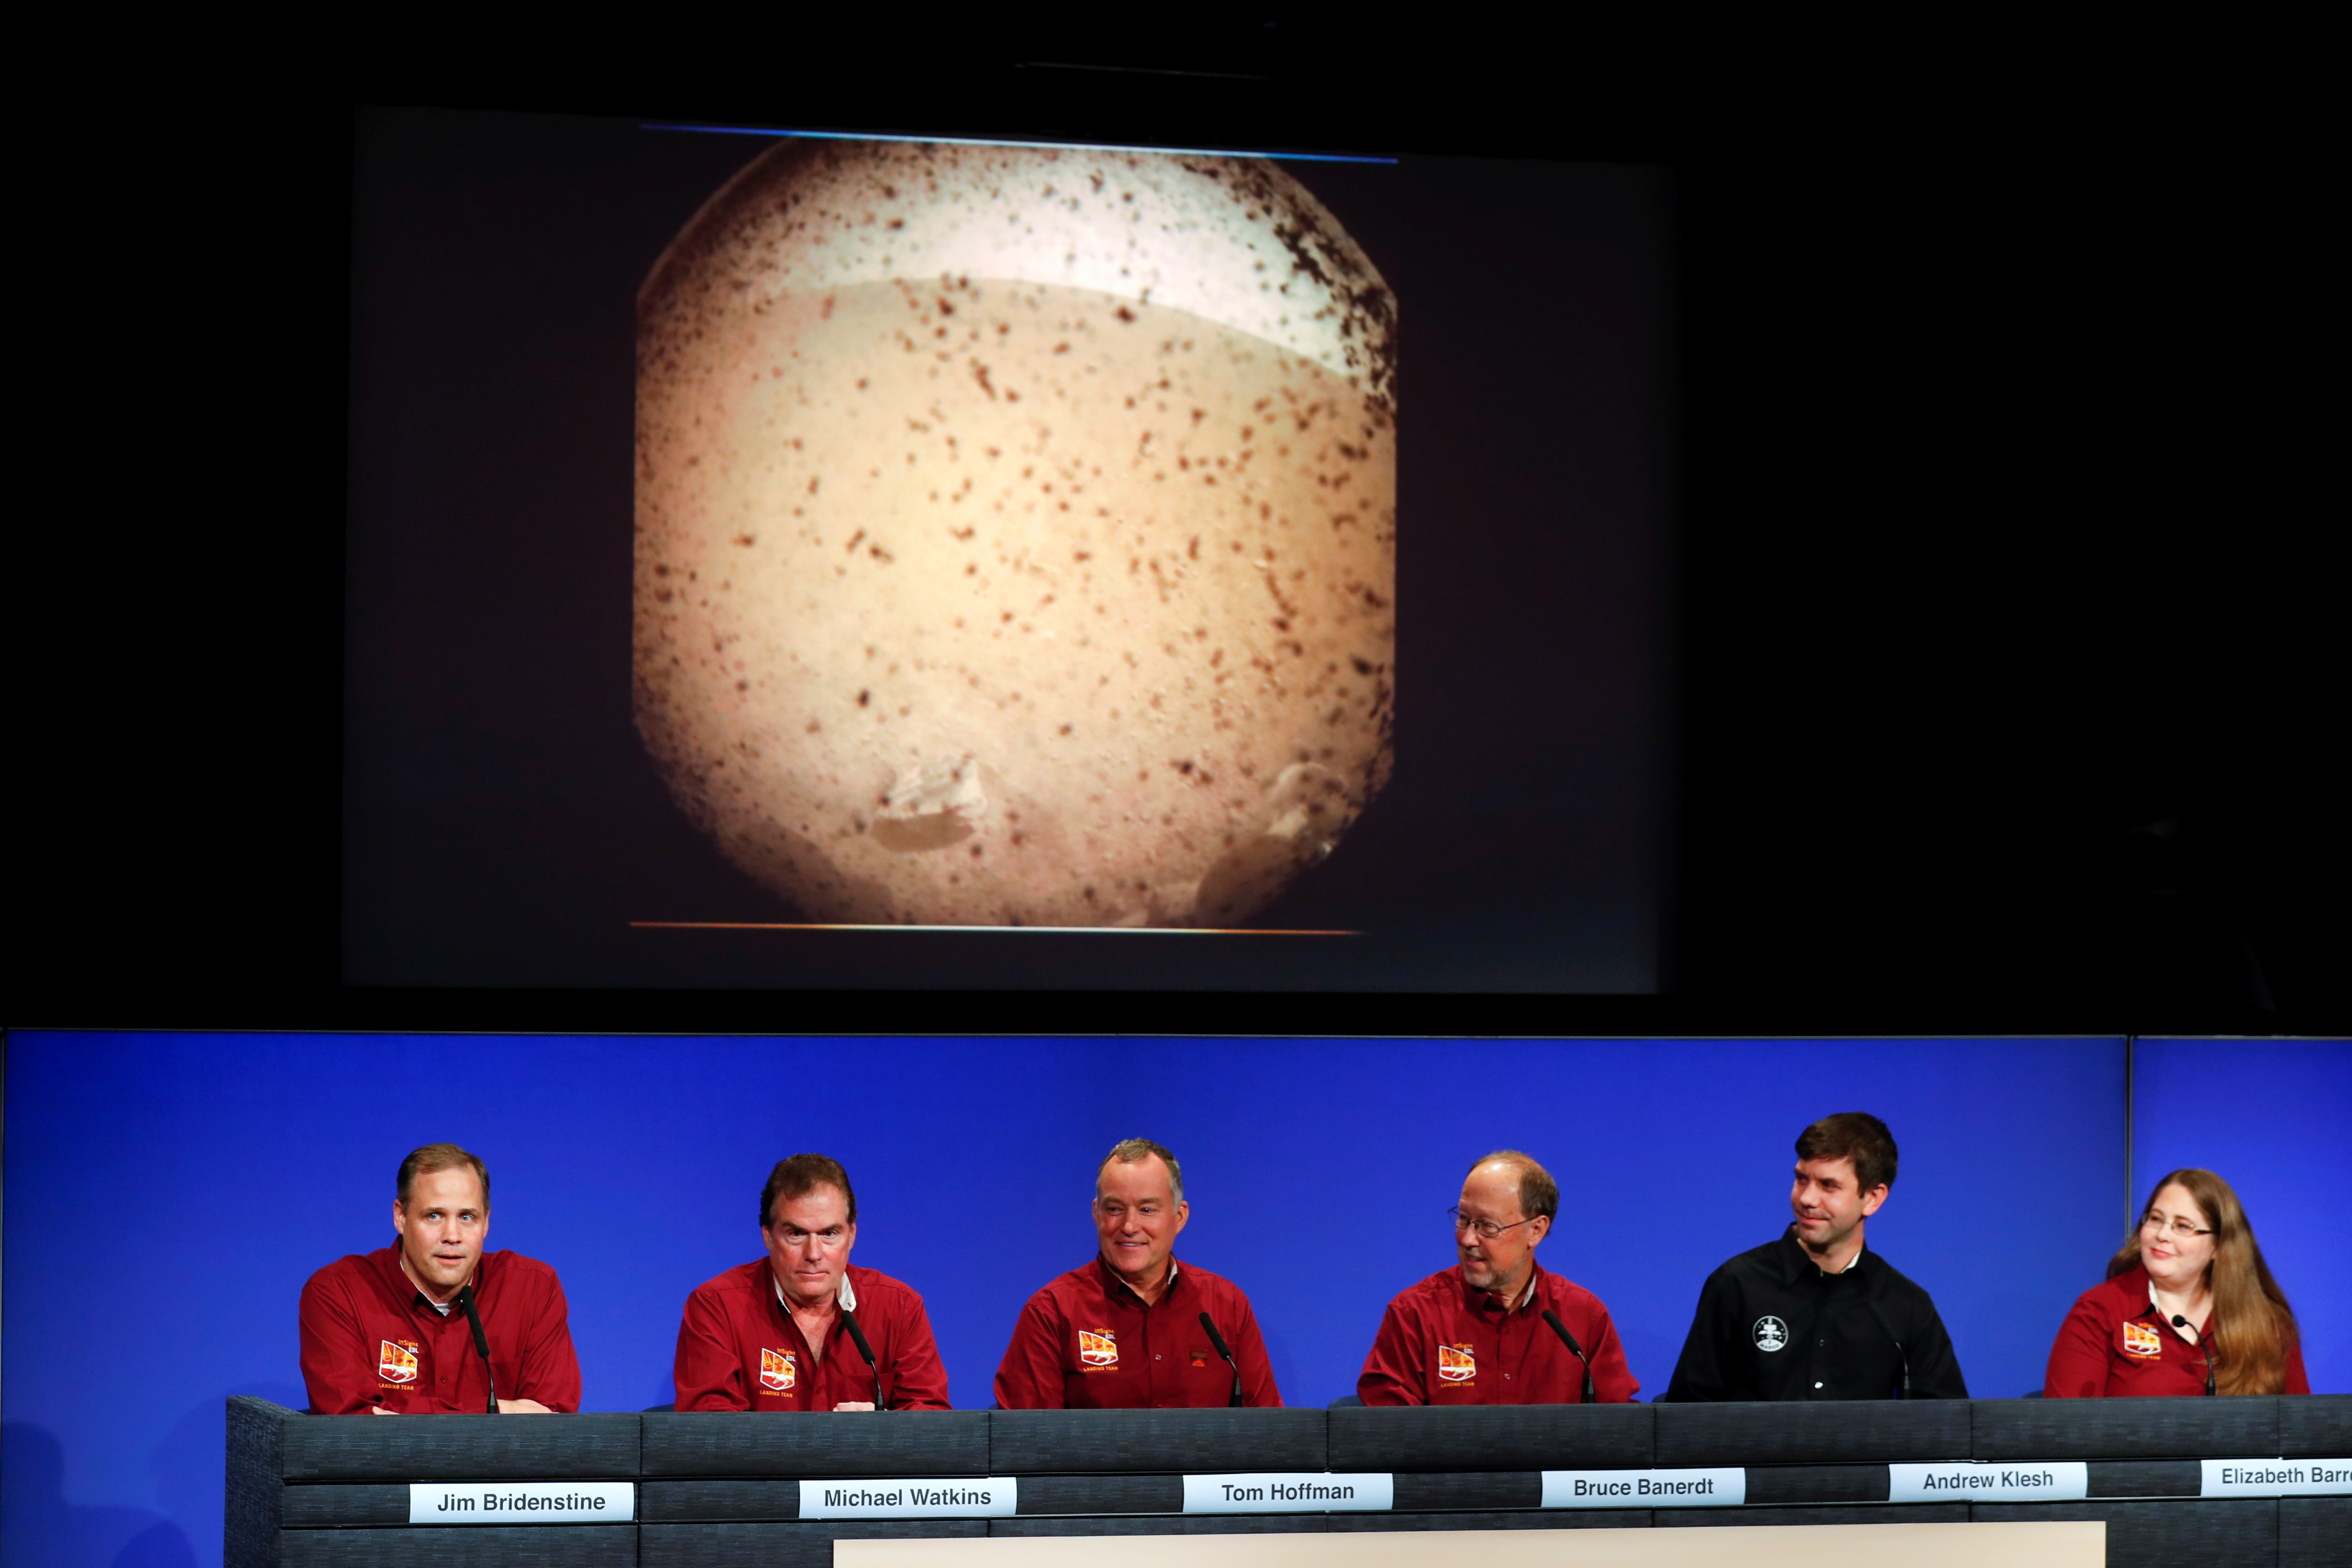 James Bridenstine (L), Administrator of the National Aeronautics and Space Administration (NASA), speaks along Michael Watkins, JPL Director, Project Manager Tom Hoffman and scientists Bruce Banerdt, Andrew Klesh and Elizabeth Barrett after the landing of spacecraft InSight on the surface of Mars, in Pasadena, California, U.S. November 26, 2018. REUTERS/Mike Blake